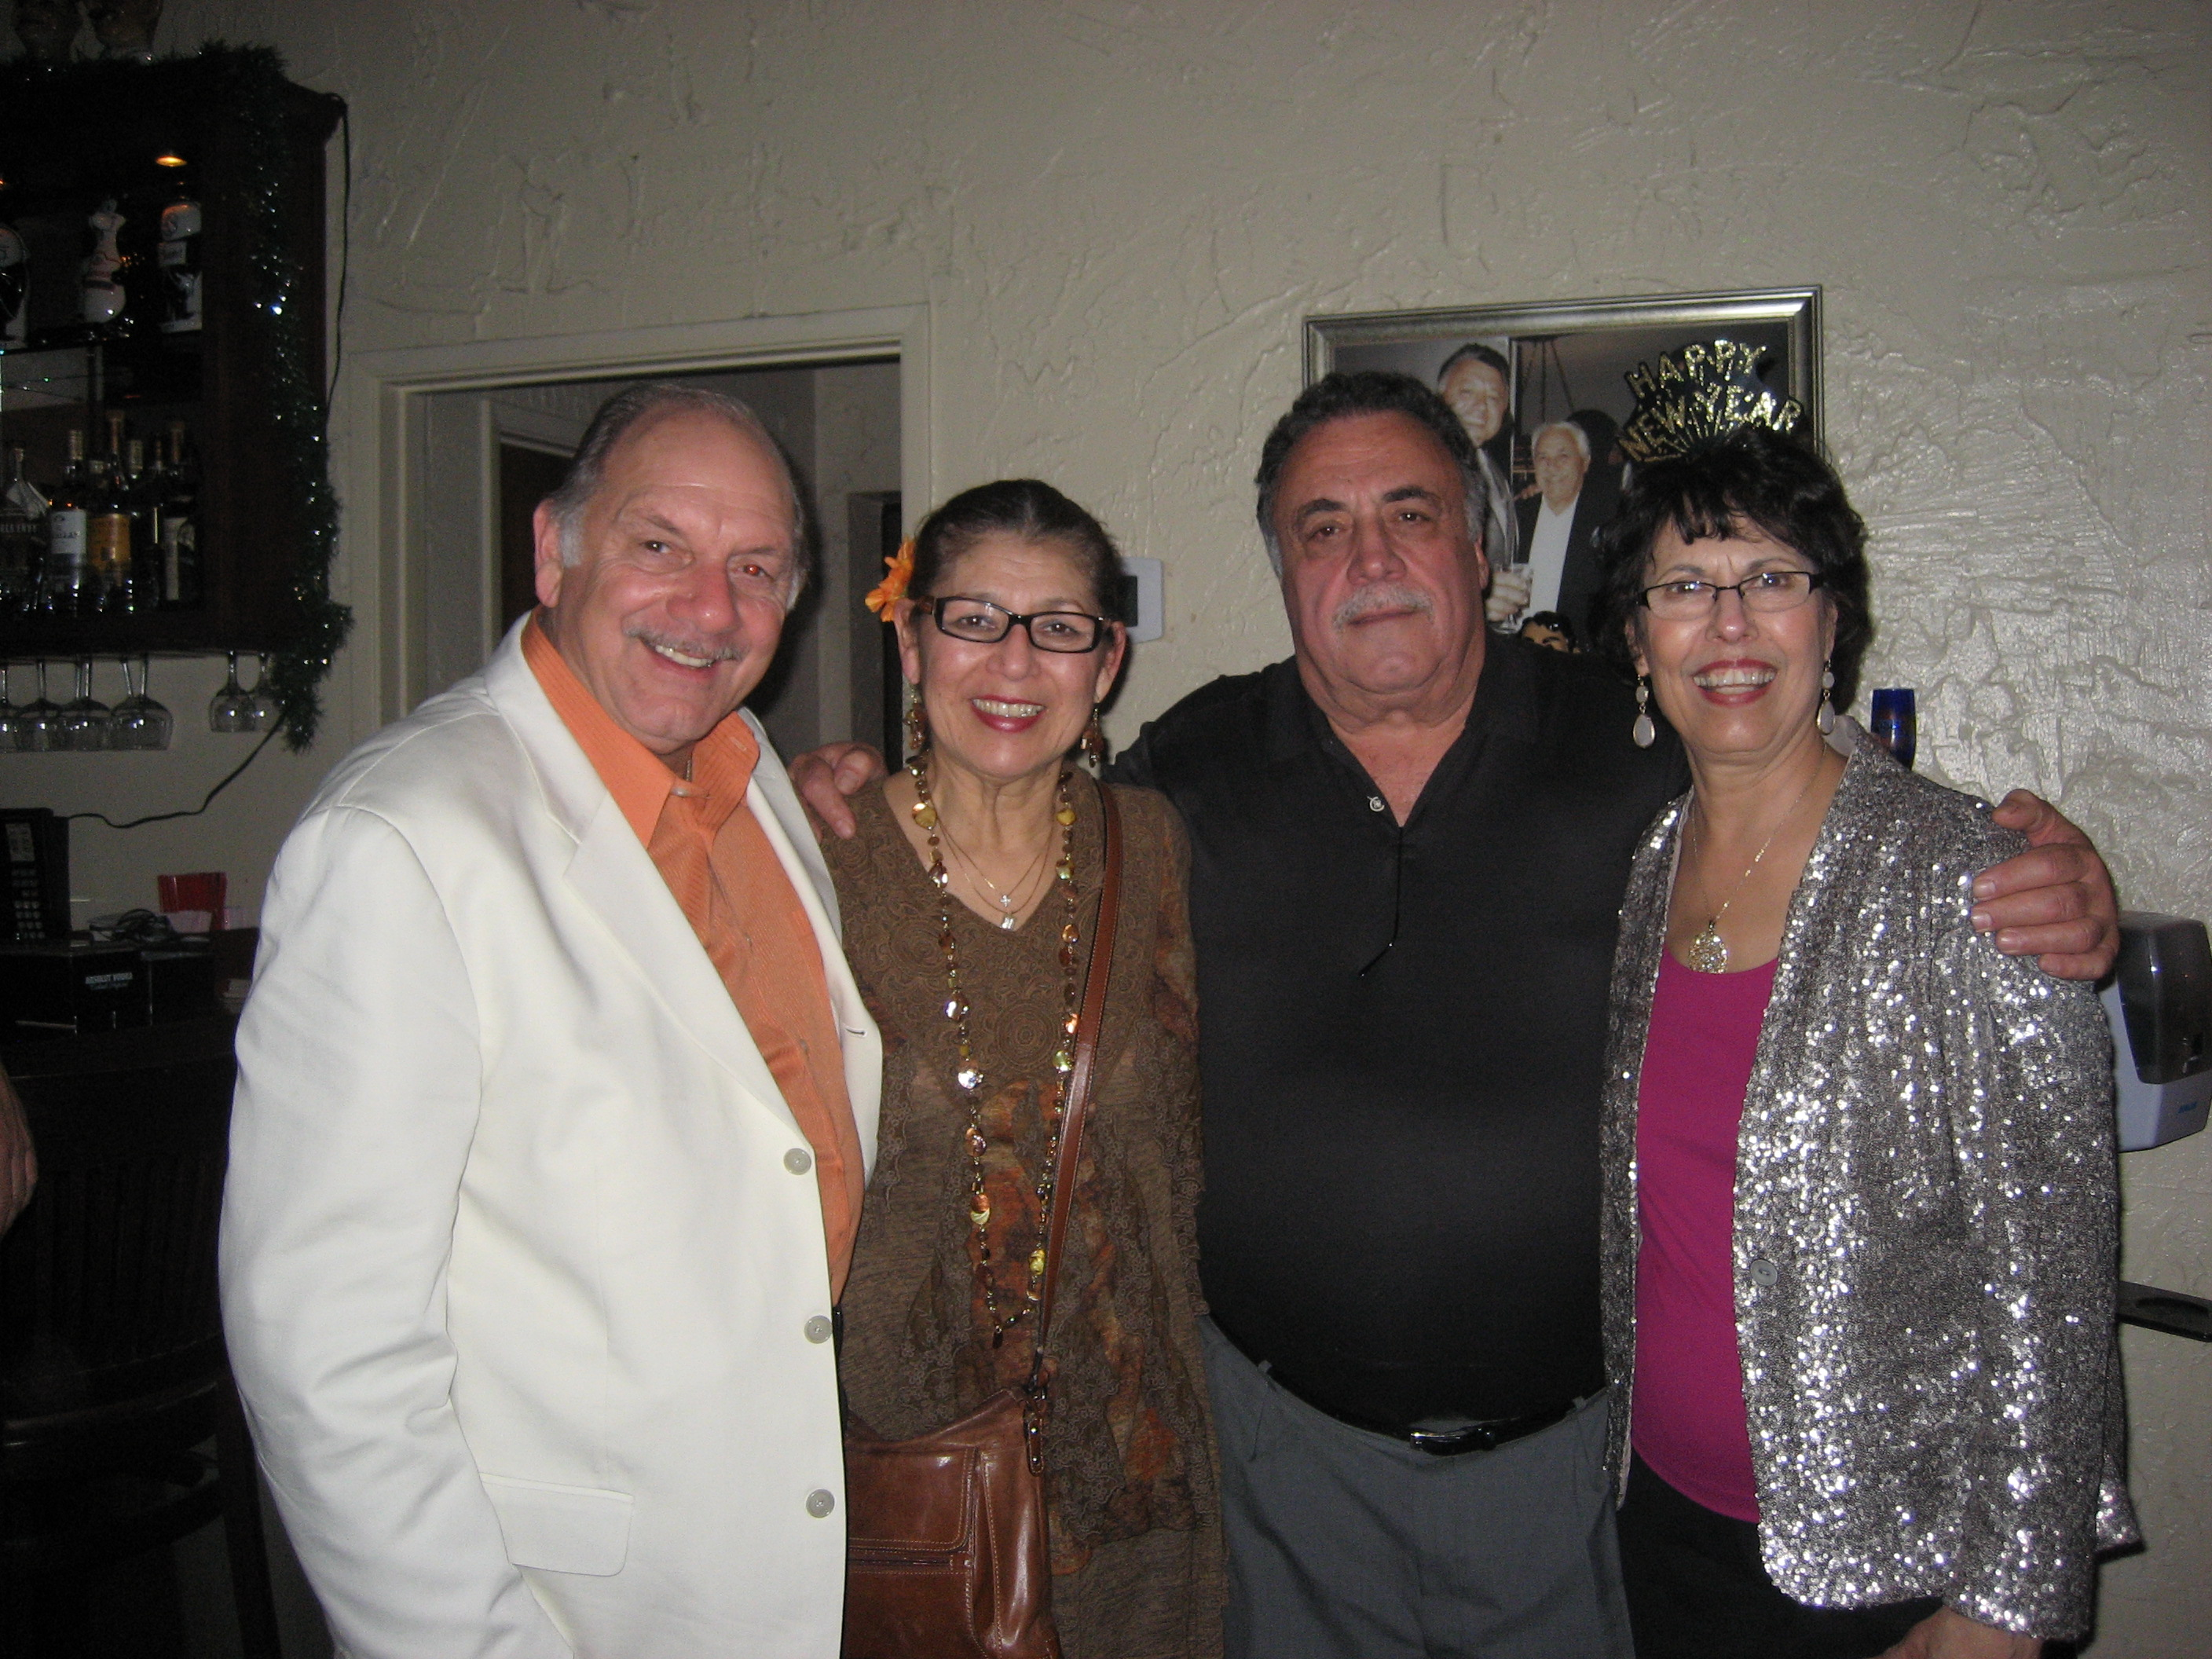 Tony & Nancy Spitaleri